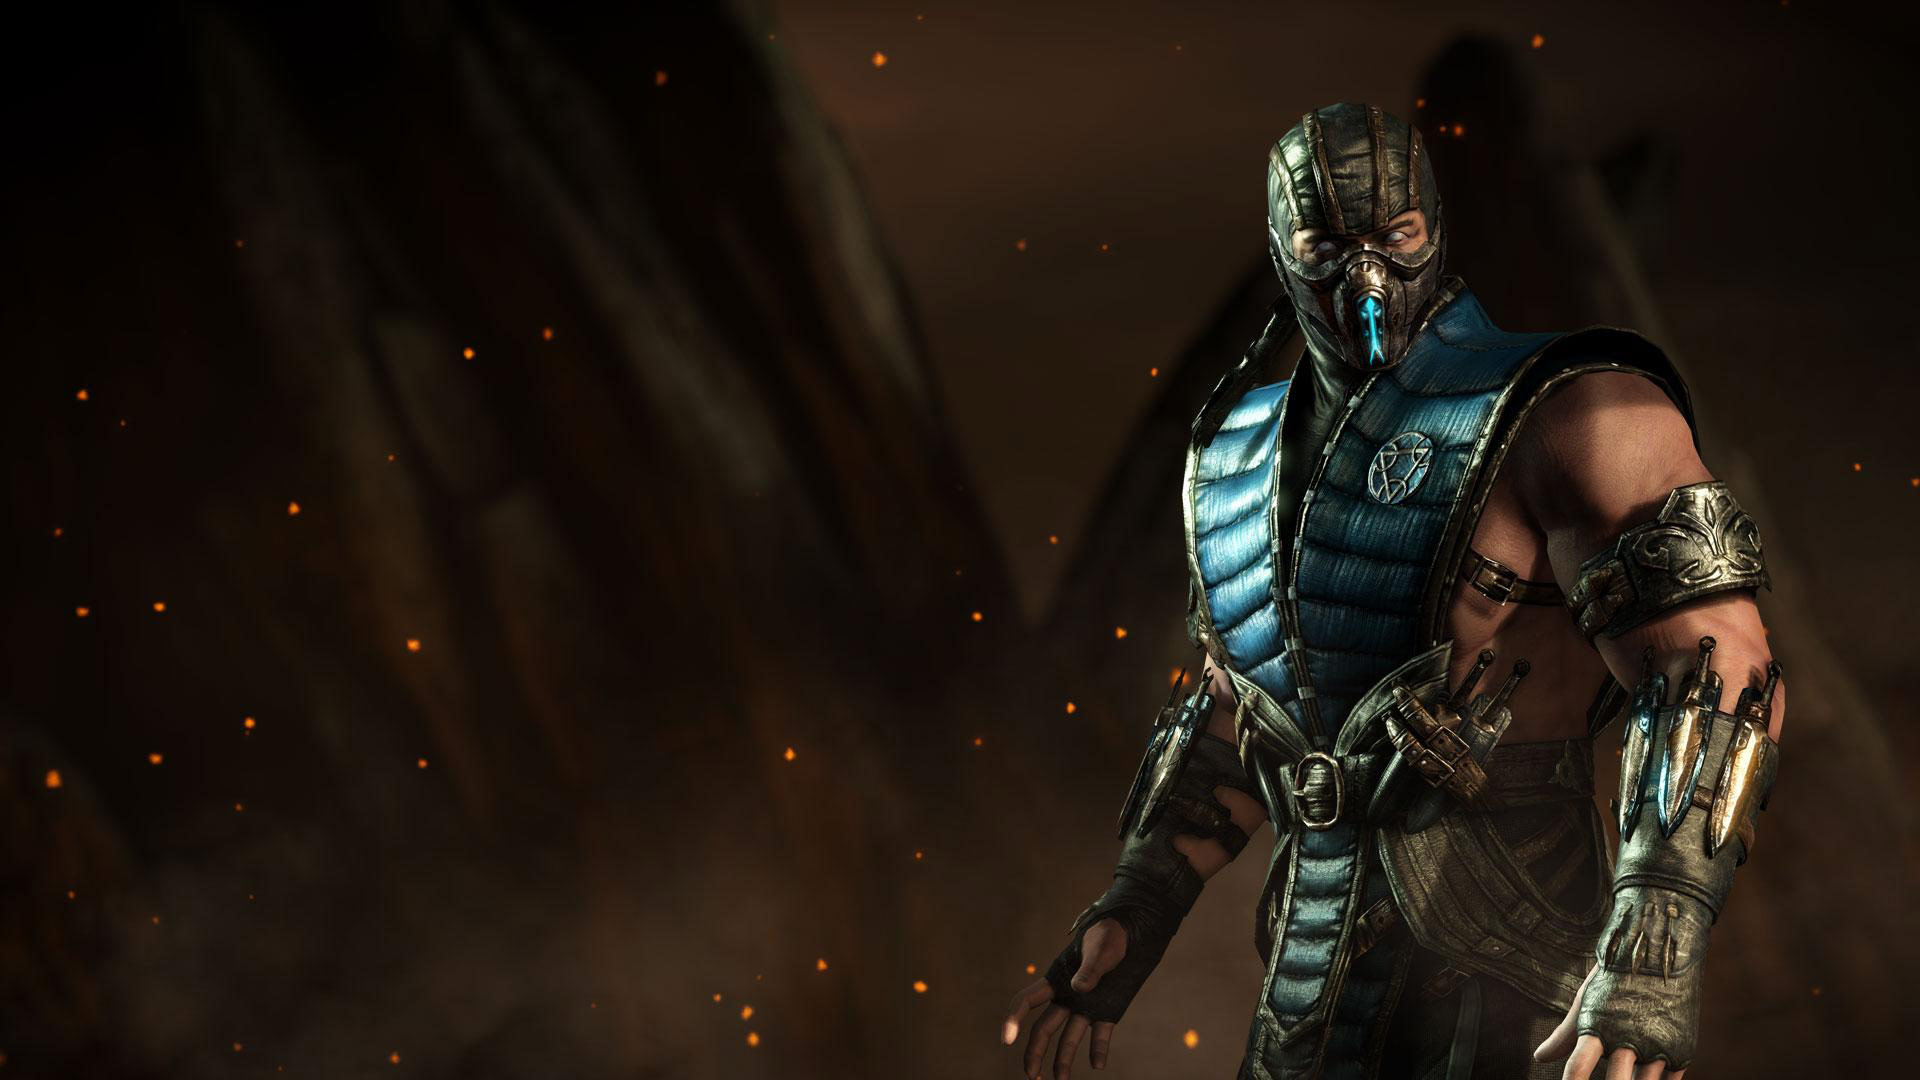 Mortal Kombat X - TFG Review / Art Gallery